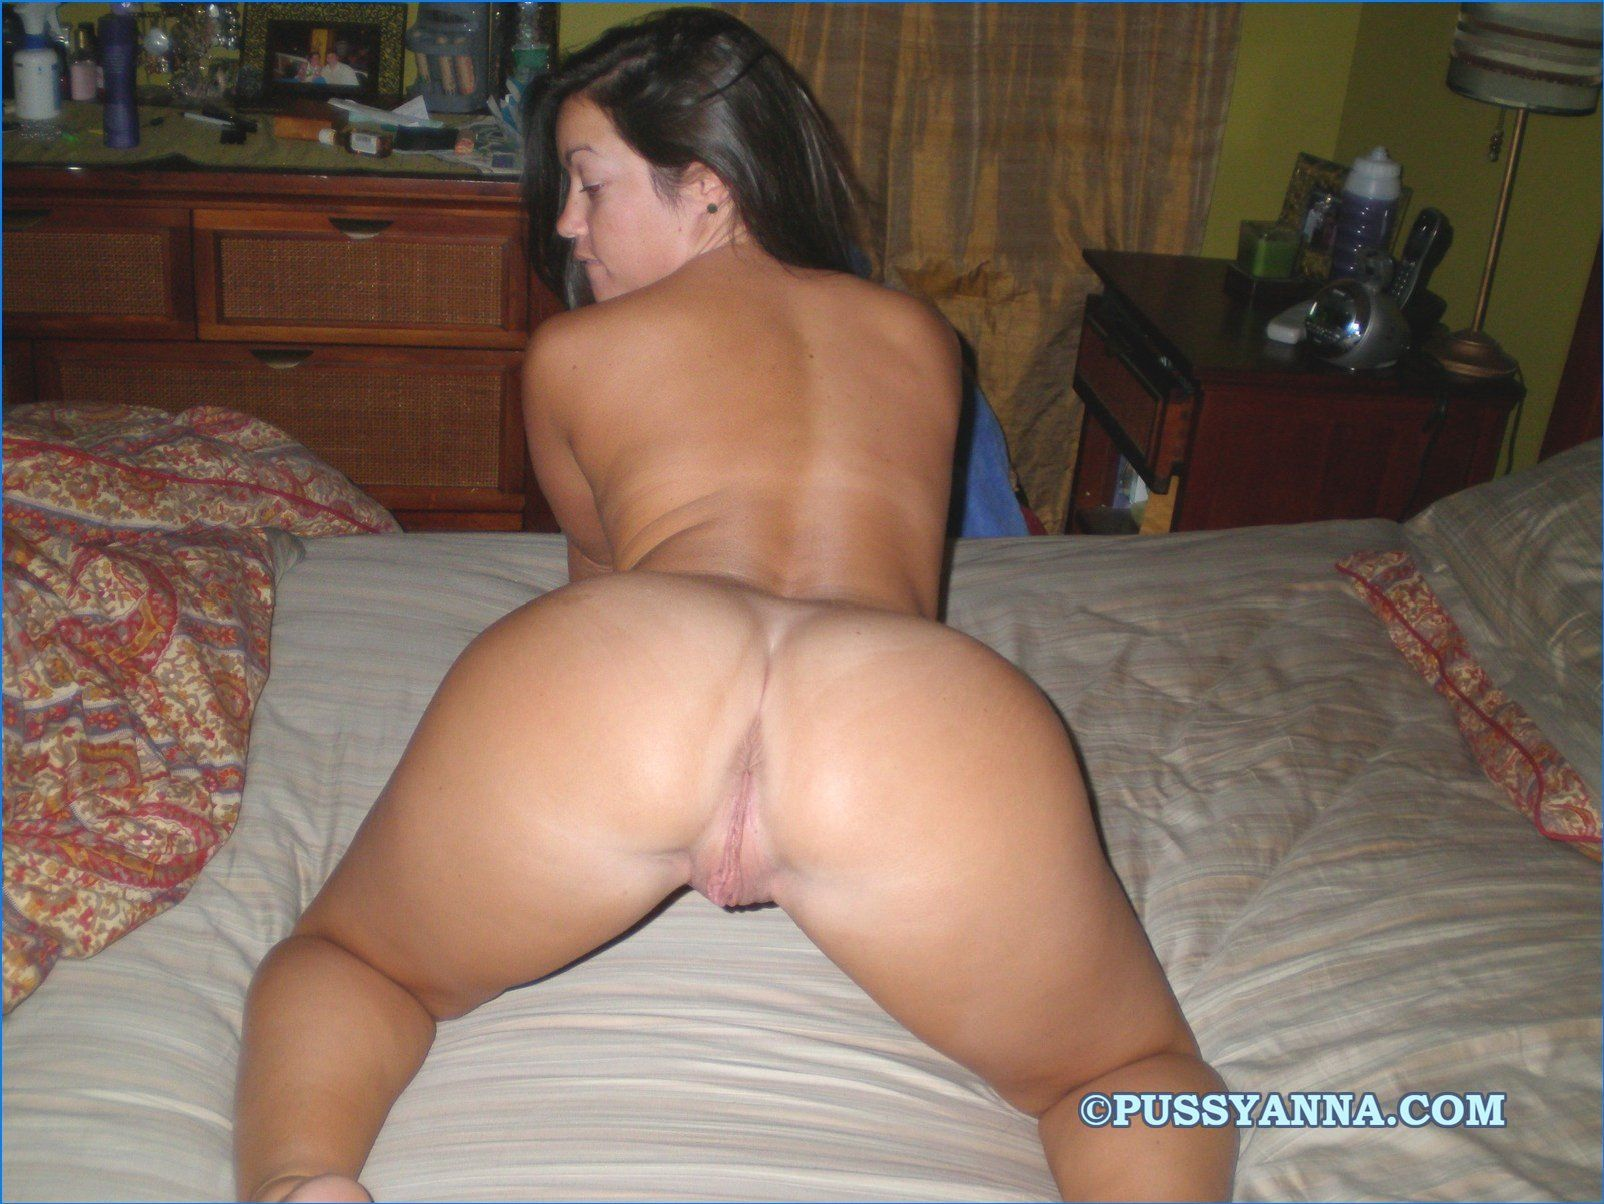 Real nude wife pics